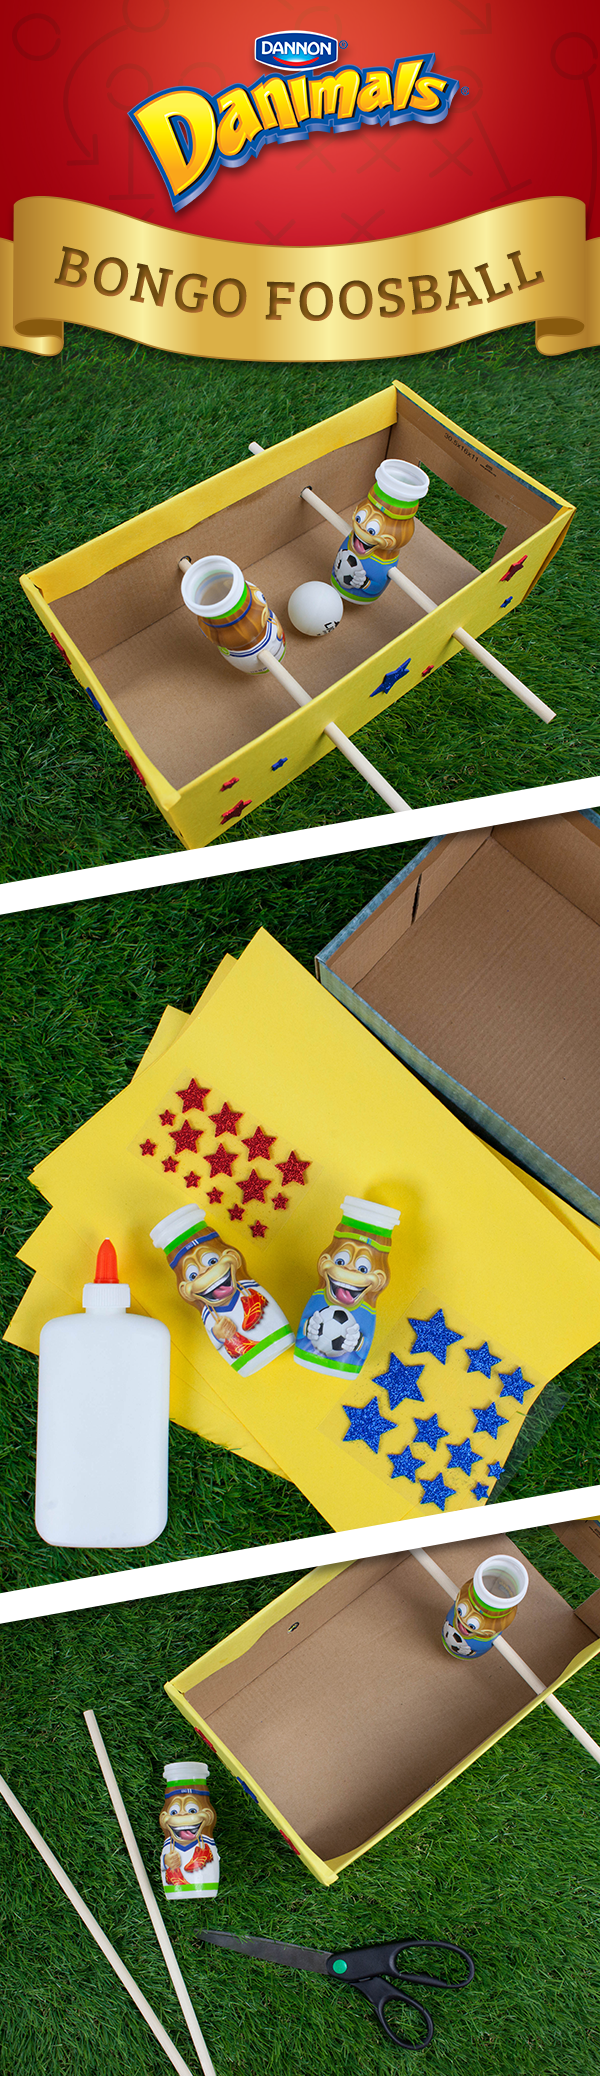 To make Bongo Foosball you'll need: a shoebox, 2 wooden dowels, 2 empty, clean Danimals® bottles, paper, stickers, glue, scissors and a ping-pong ball. Only adults should cut with scissors. 1) Cut goals on each end of the shoebox. 2) Decorate the shoebox. 3) Very carefully, cut holes on either side of each Danimals® bottle and shoebox. 4) Push dowel through box, through bottle, and then out the other side of the box. To play: Kids use the dowels to move their bottle and try to score a goal!